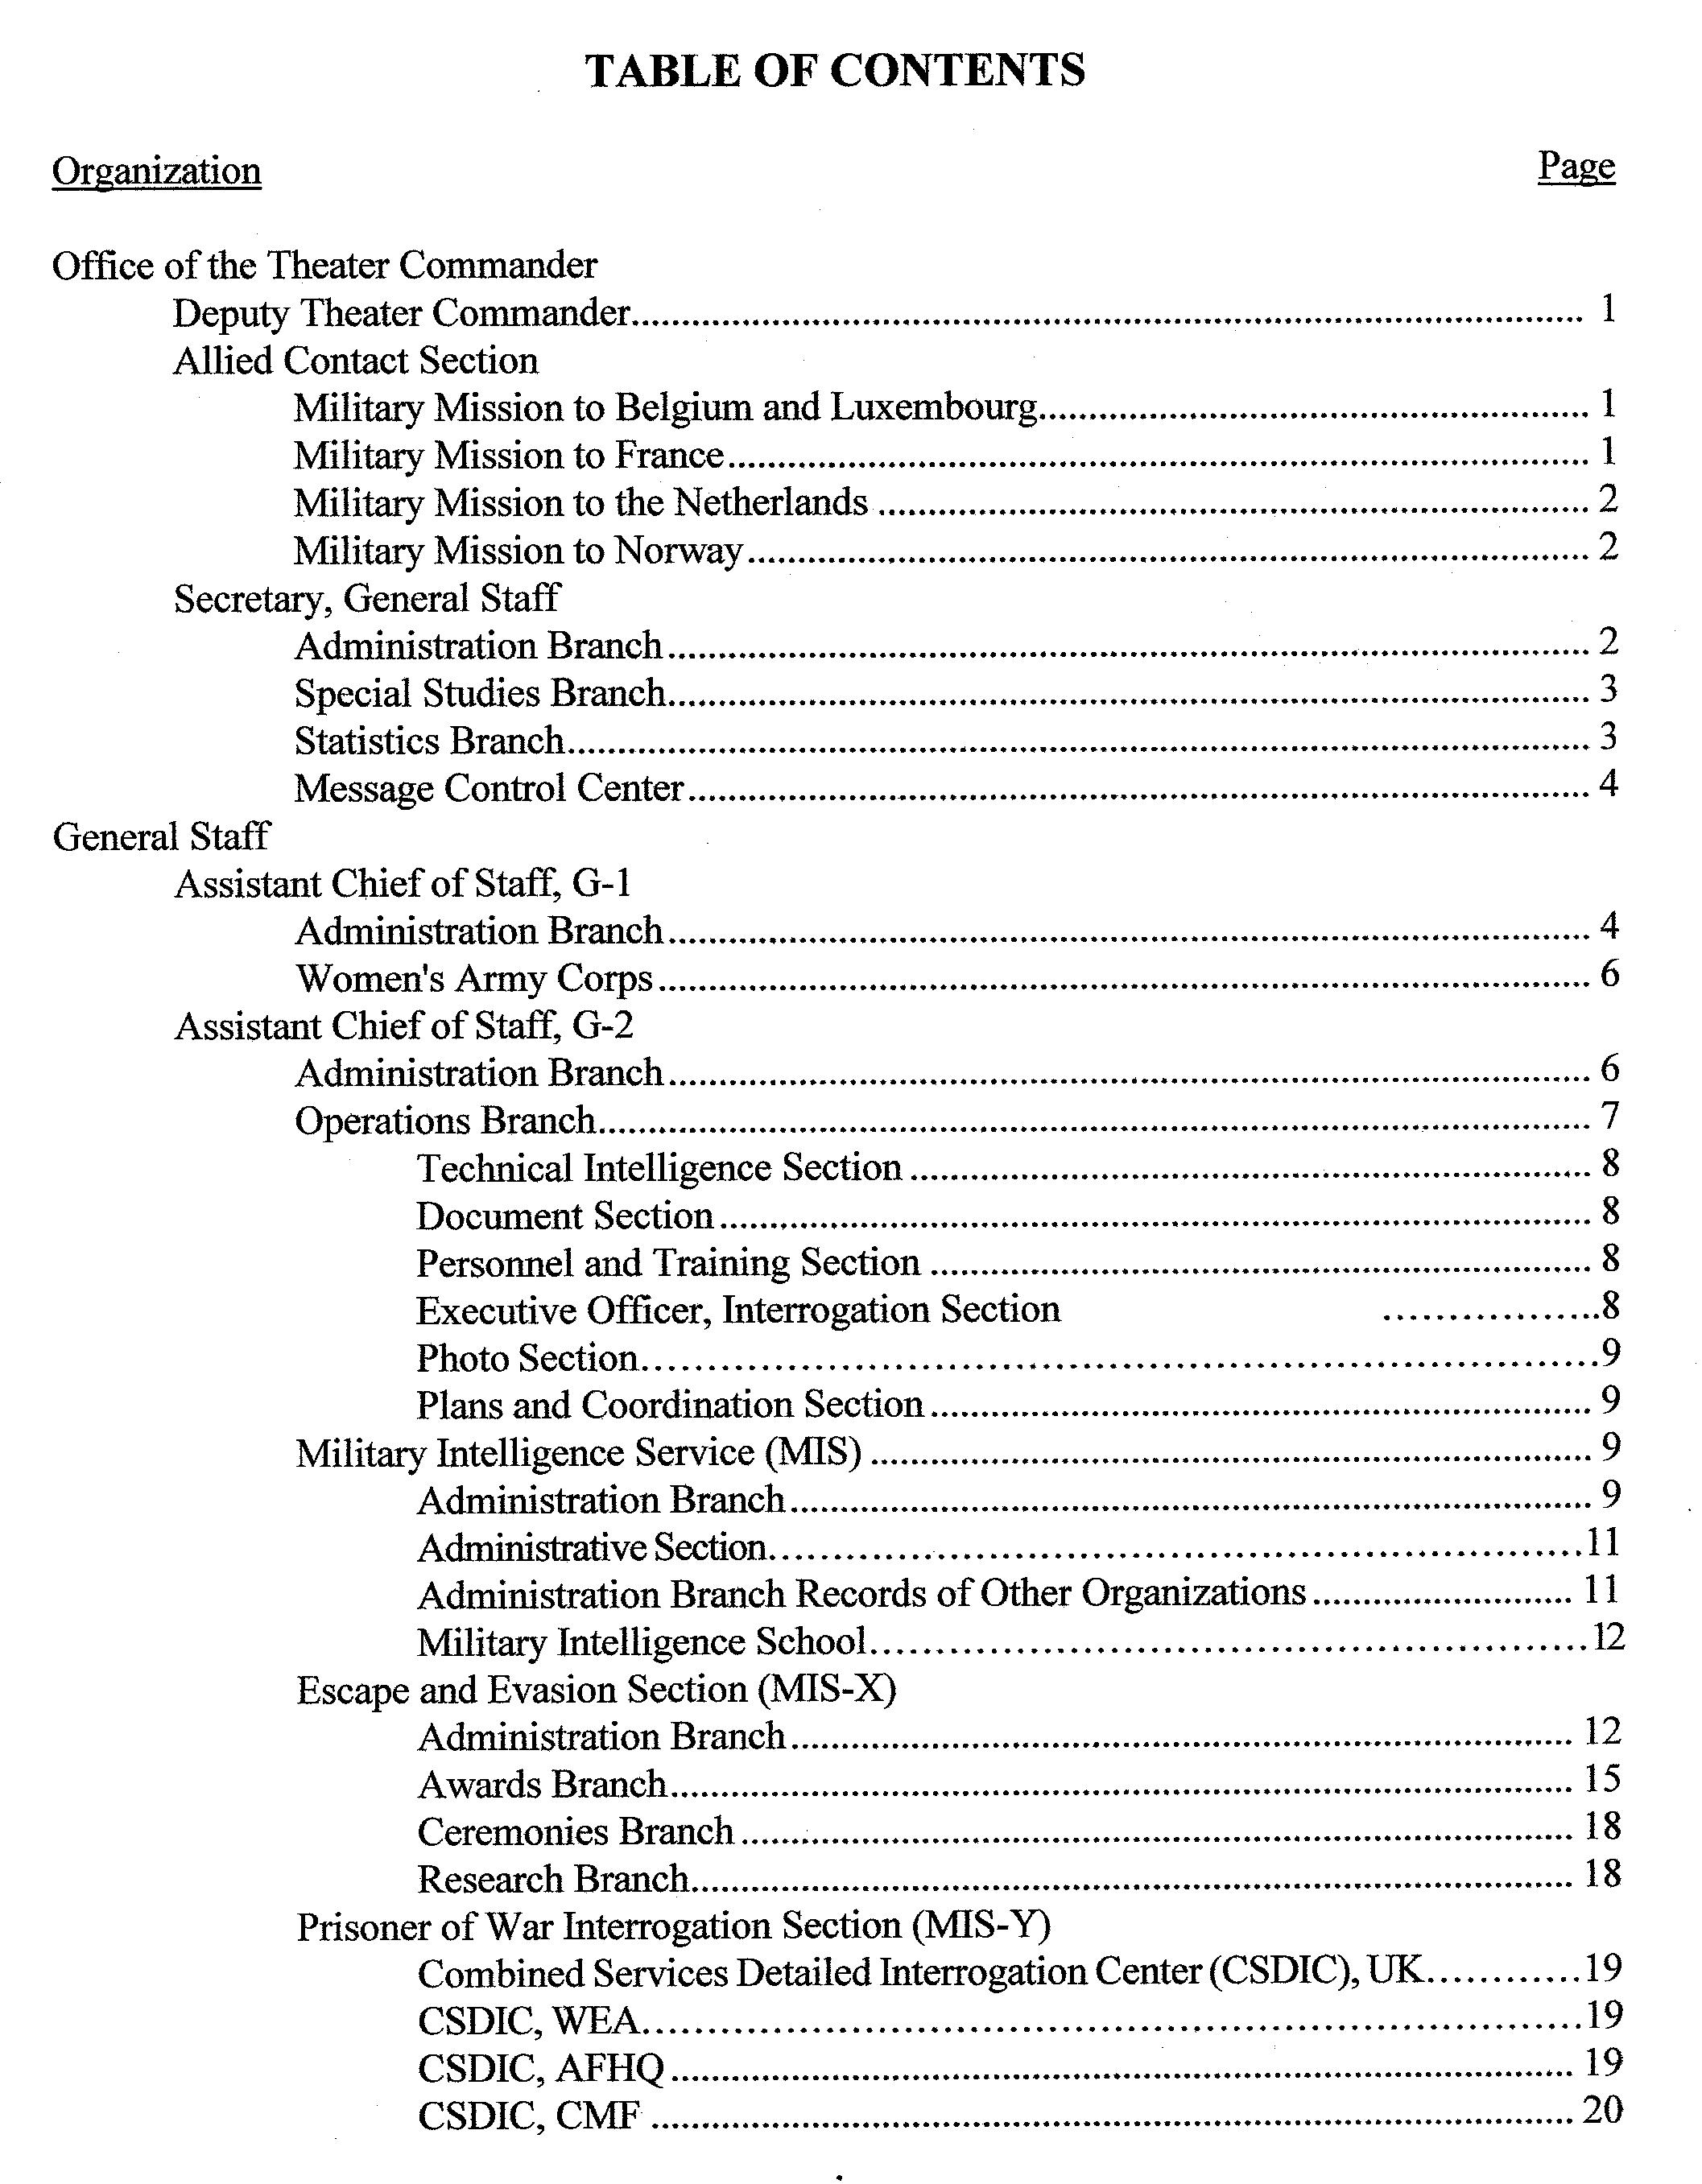 Index to escape evasion record locations wwii for Table of contents